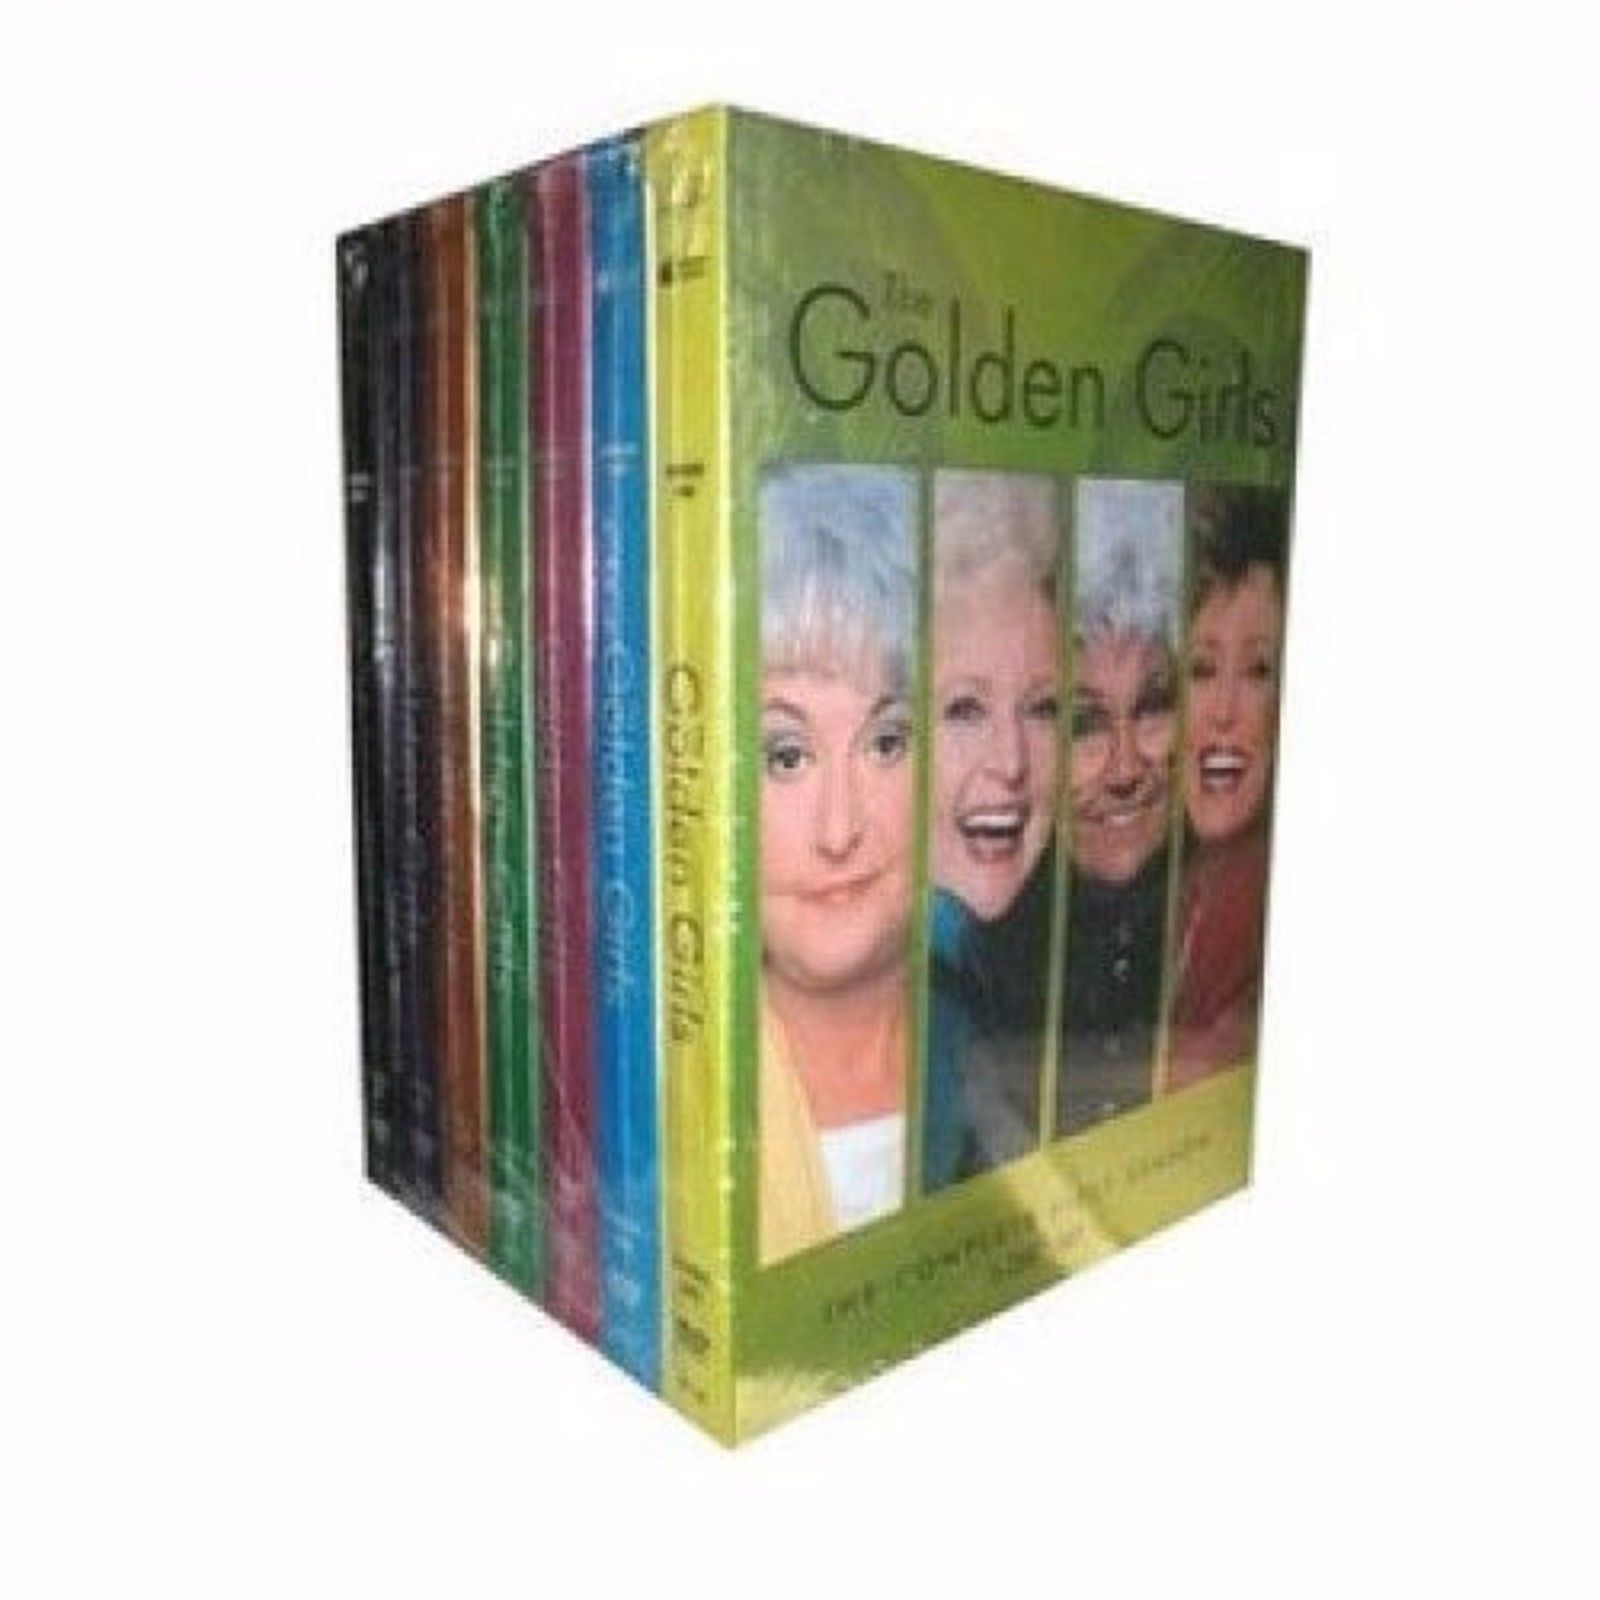 The Golden Girls Complete Series 1-7 Seasons (DVD Set) New TV Comedy Show